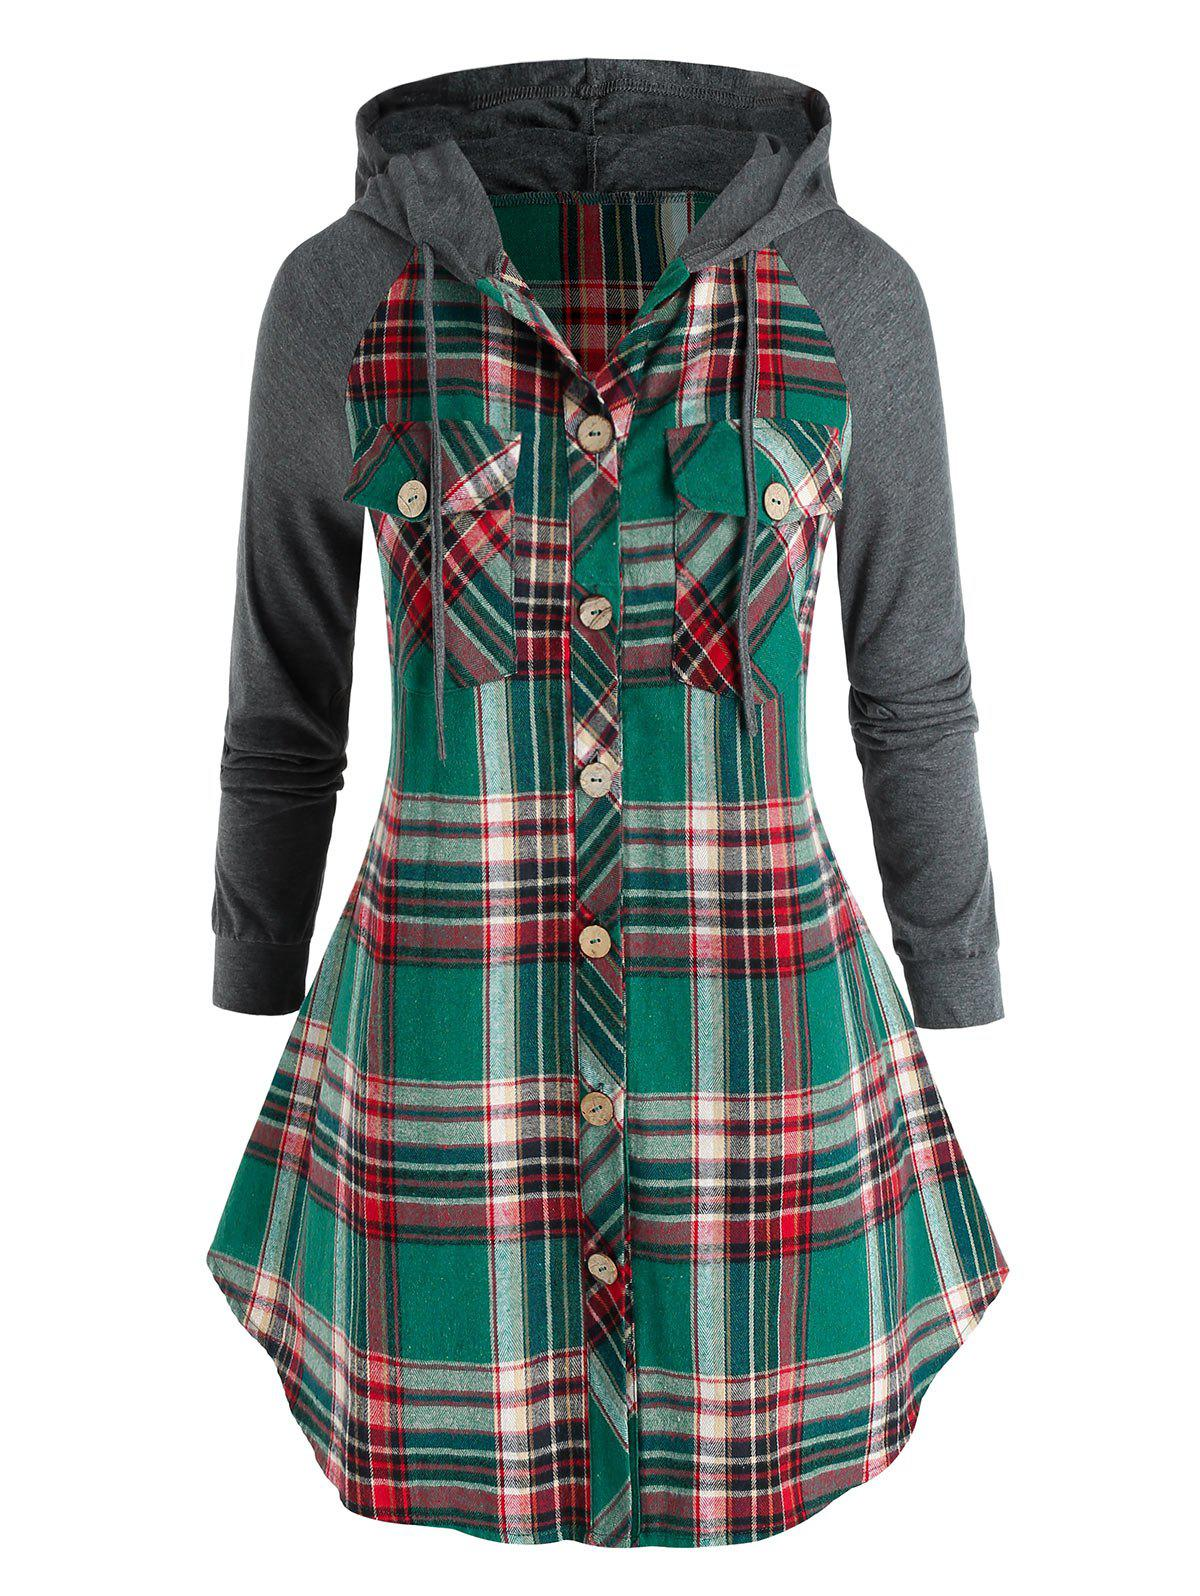 Plus Size Hooded Plaid Flap Pocket Curved Hem Blouse - SEA GREEN 5X